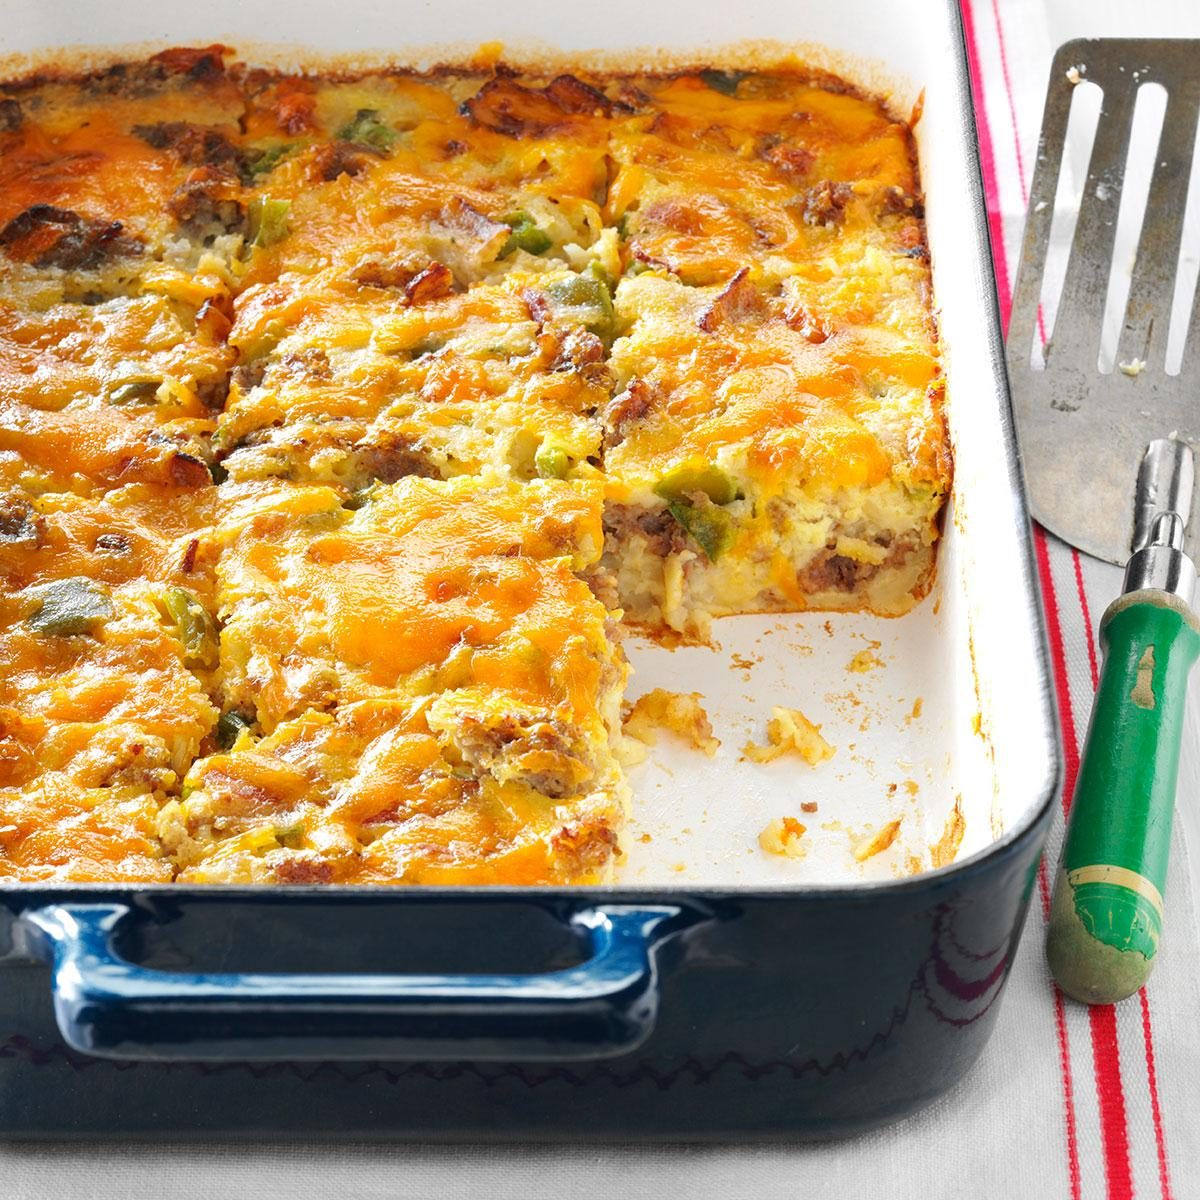 Breakfast Cassorle: Holiday Brunch Casserole Recipe